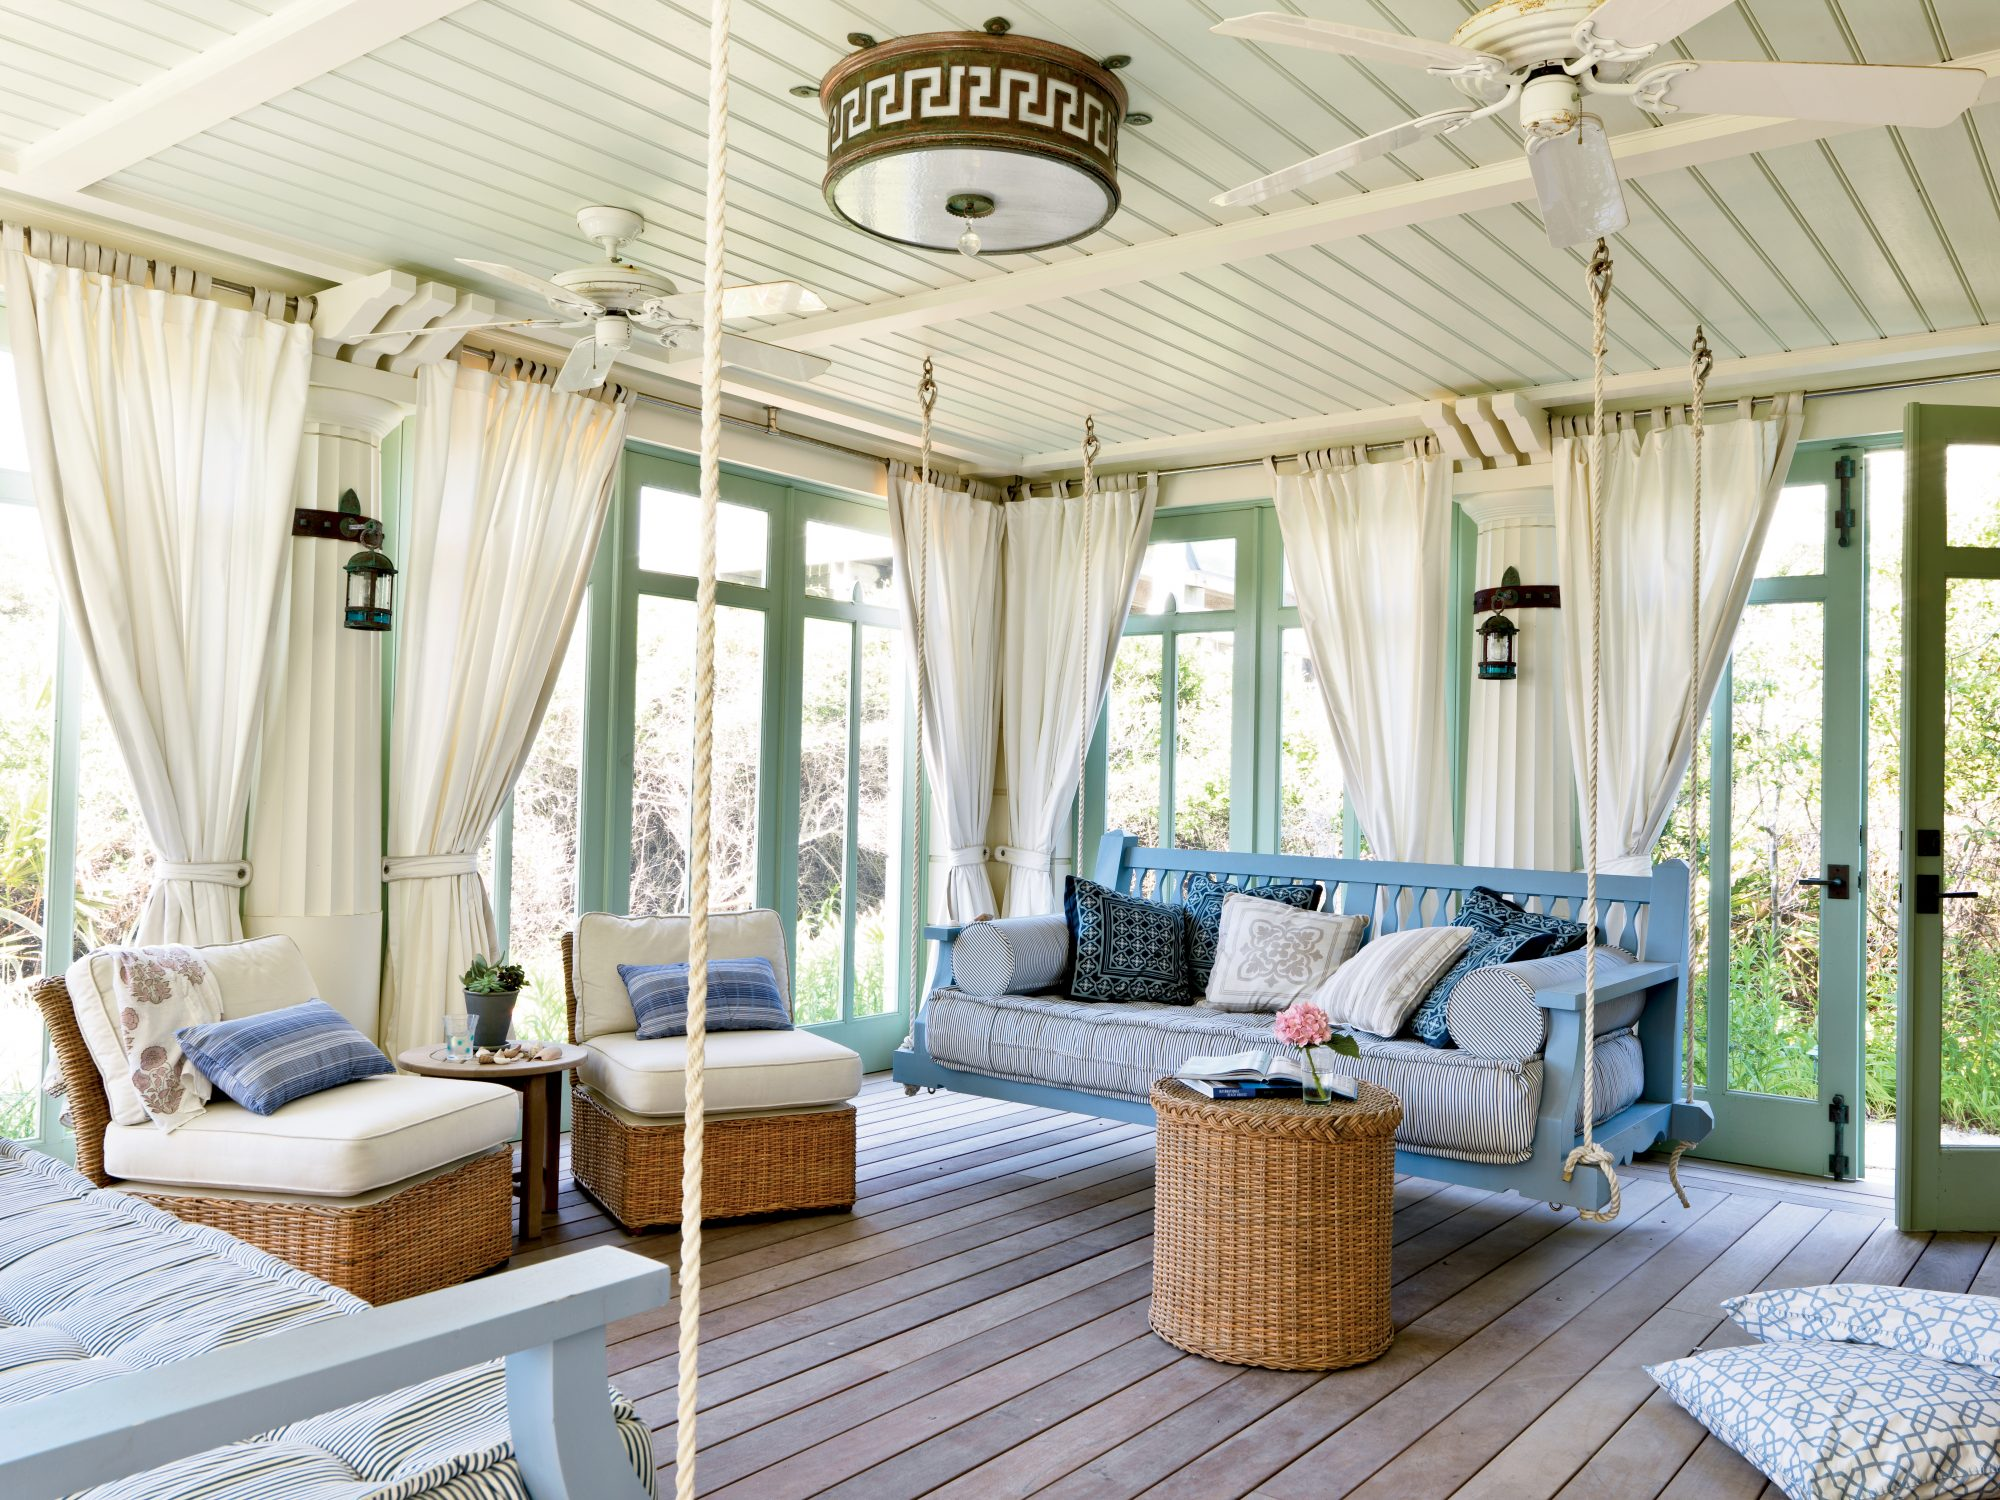 This Seaside, Florida, sleeping porch is the ultimate coastal hangout. It's screened and curtained for comfort and features both hanging daybeds and a pair of wicker chairs with plush cushions. The hanging beds are outfitted with a thick cushion the size